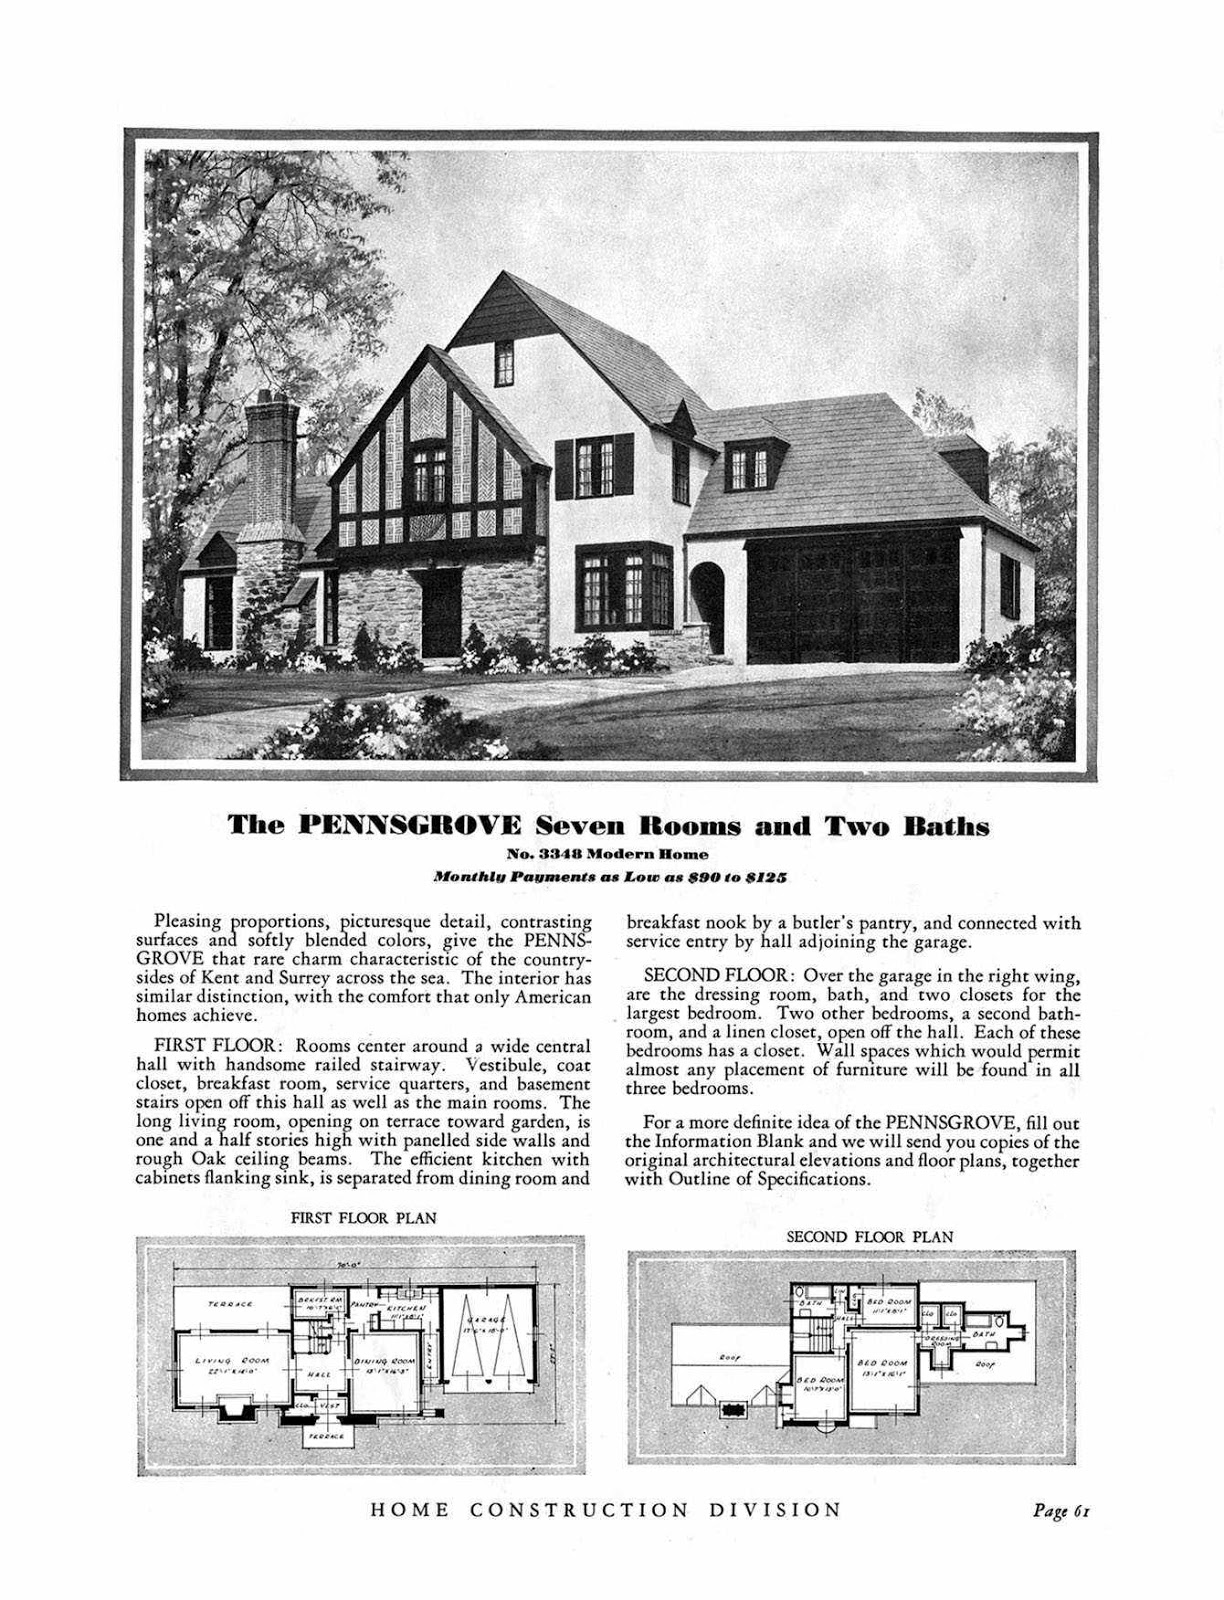 United states navy quonset huts chronology of sears for 1930s house plans